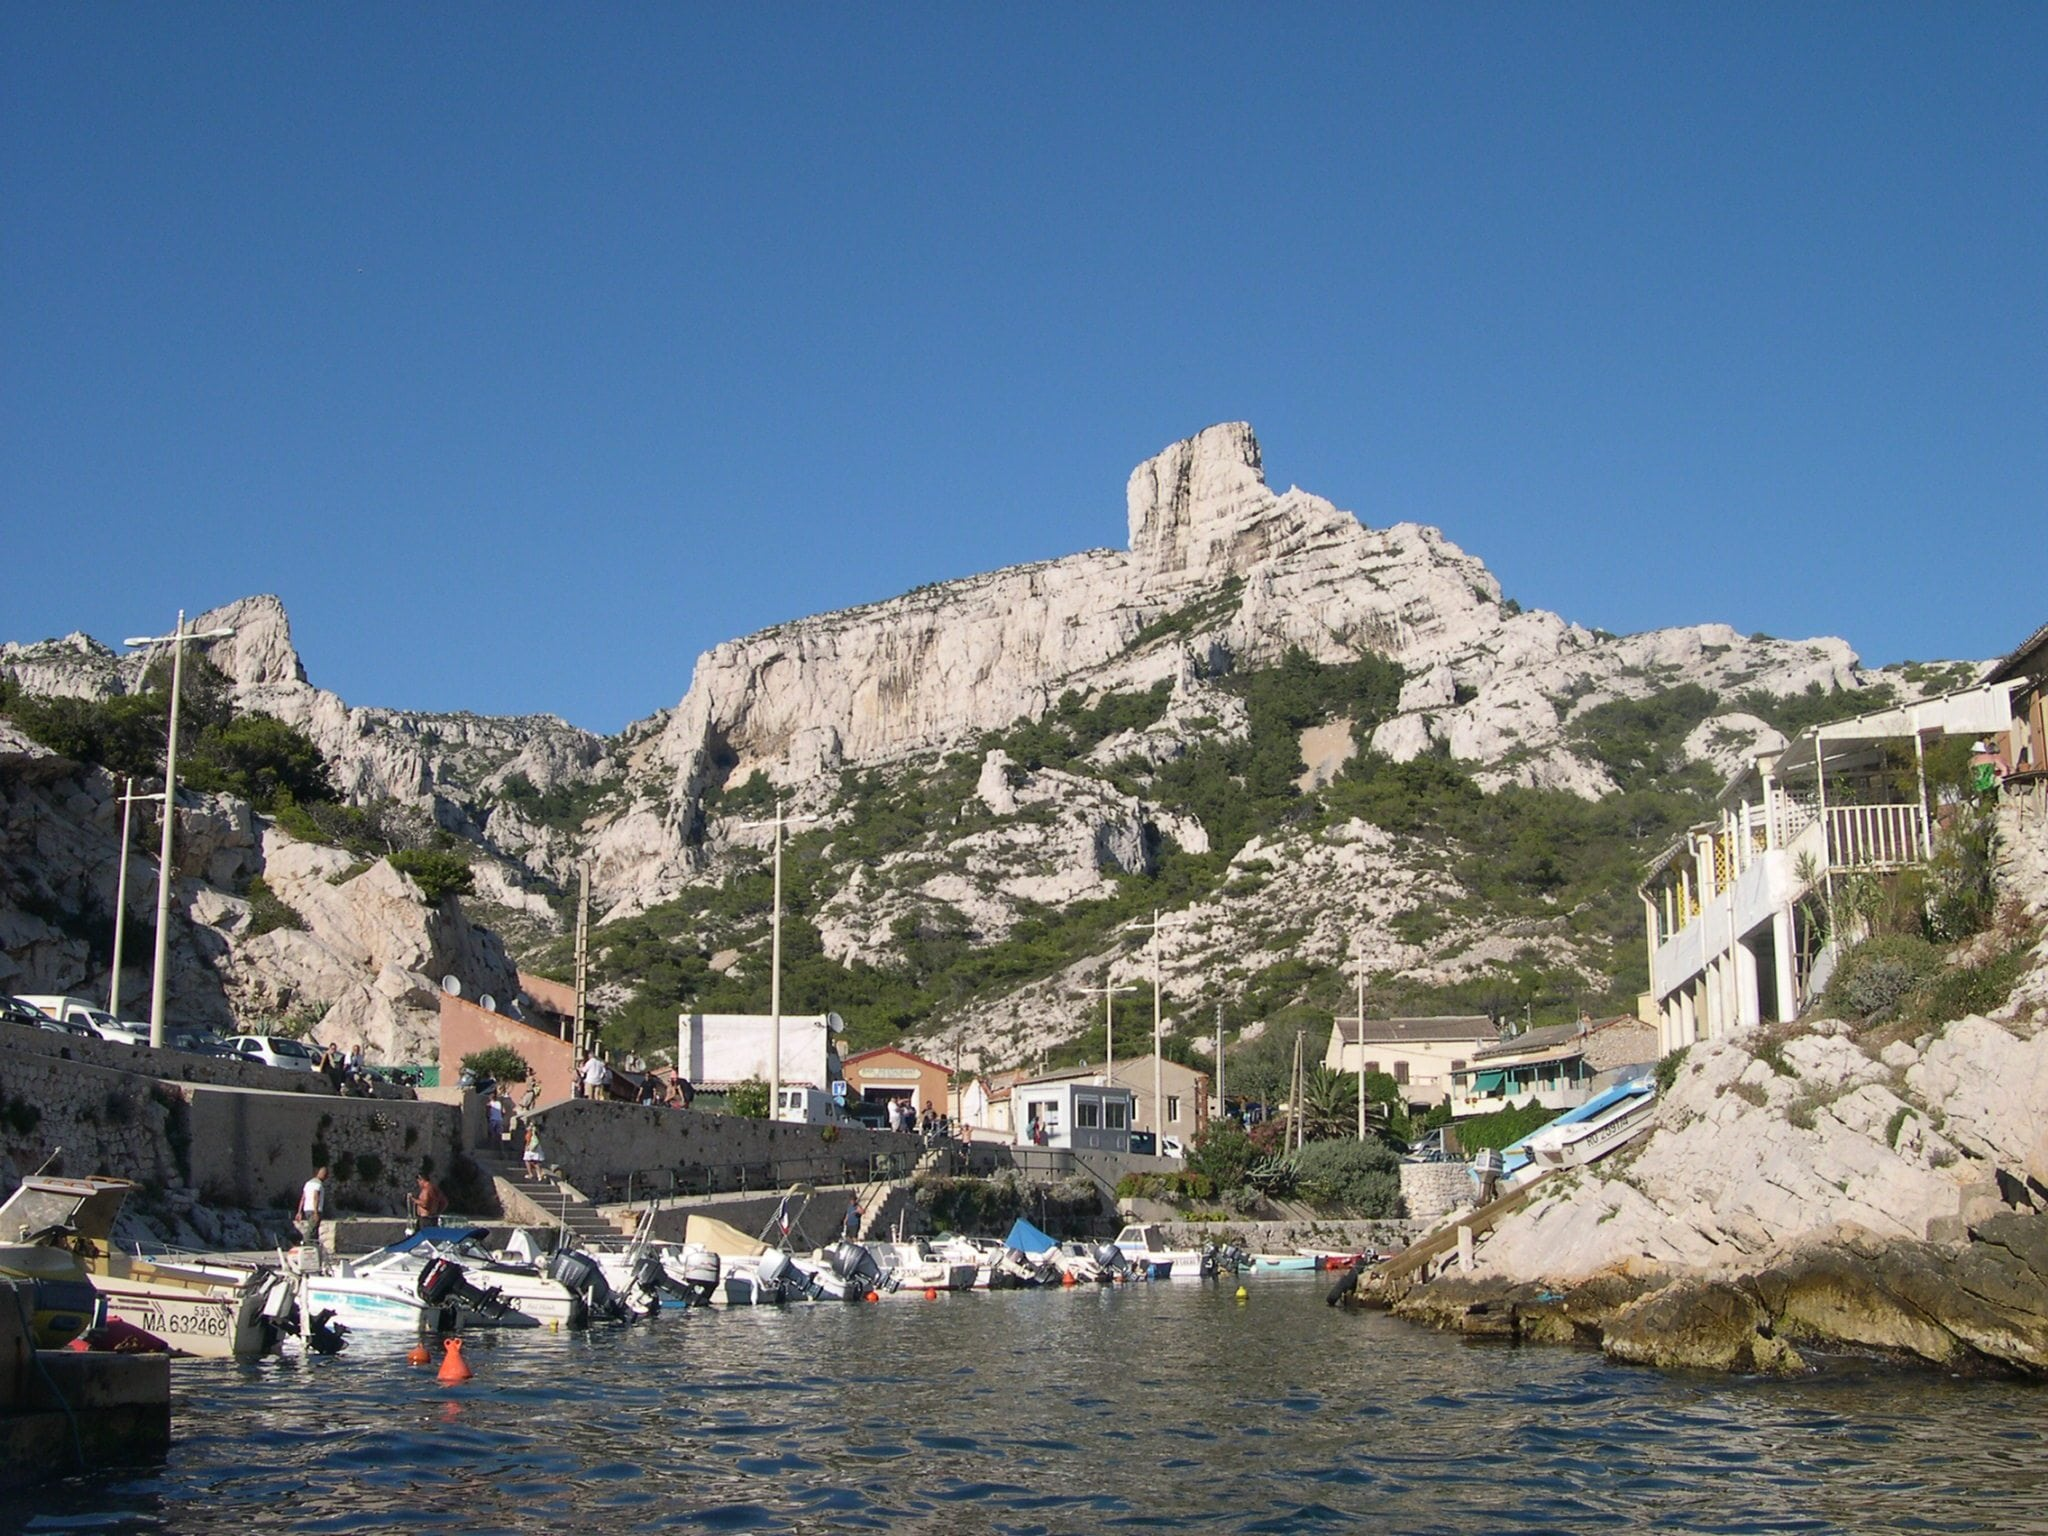 authentique cabanon dans les calanques (parc national)